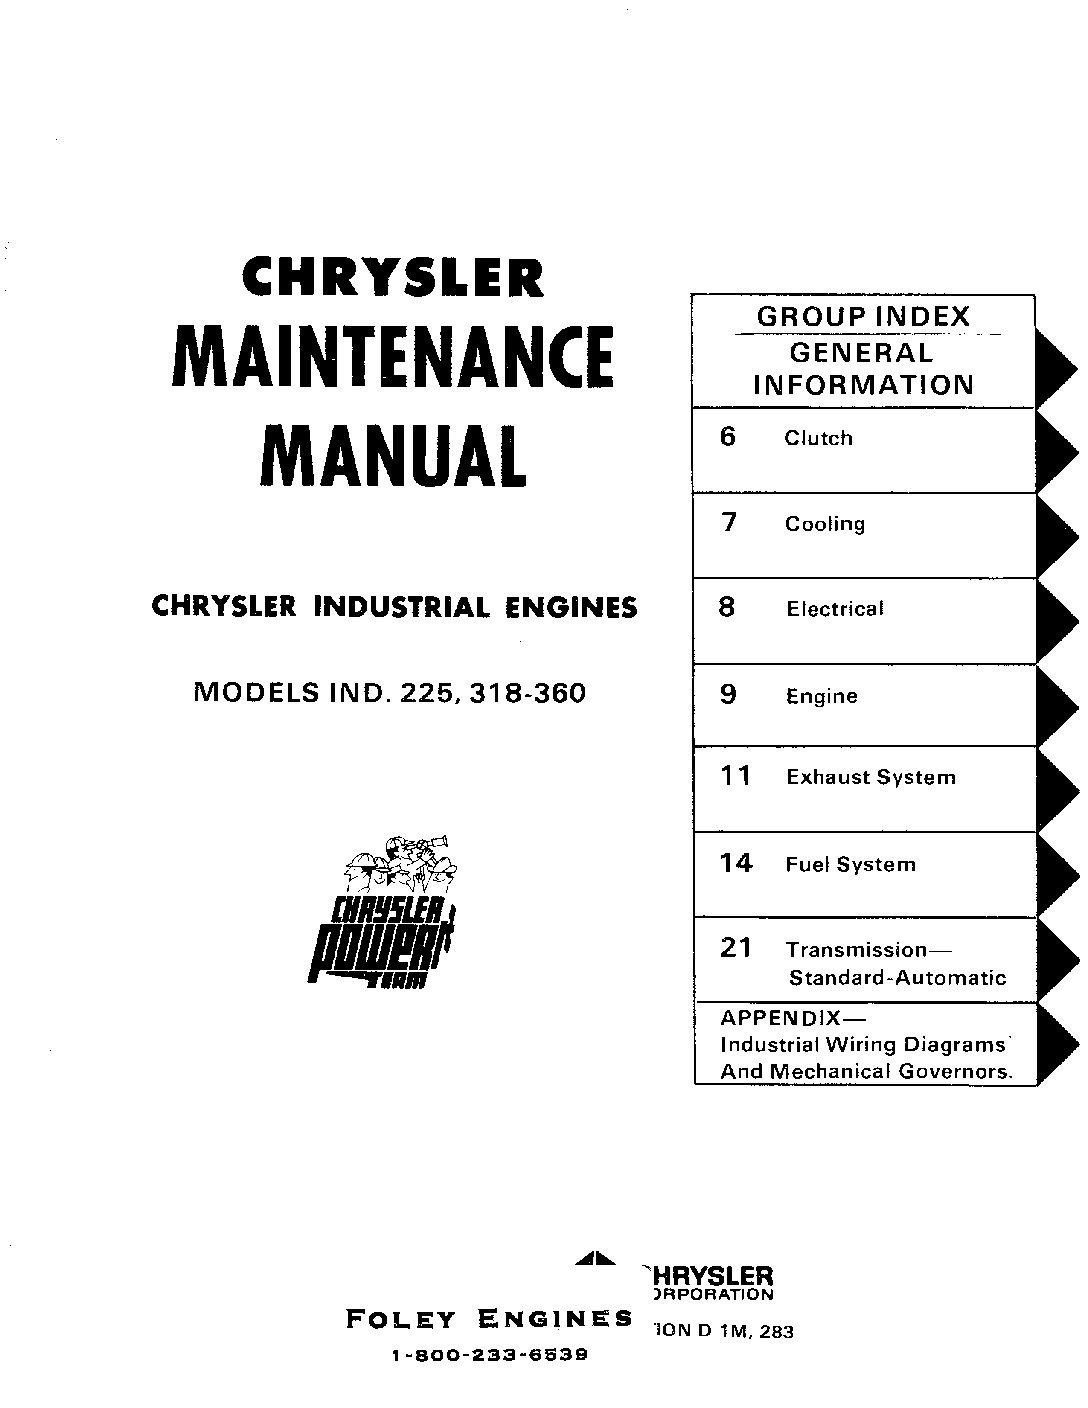 hight resolution of chrysler 225 318 360 service manual